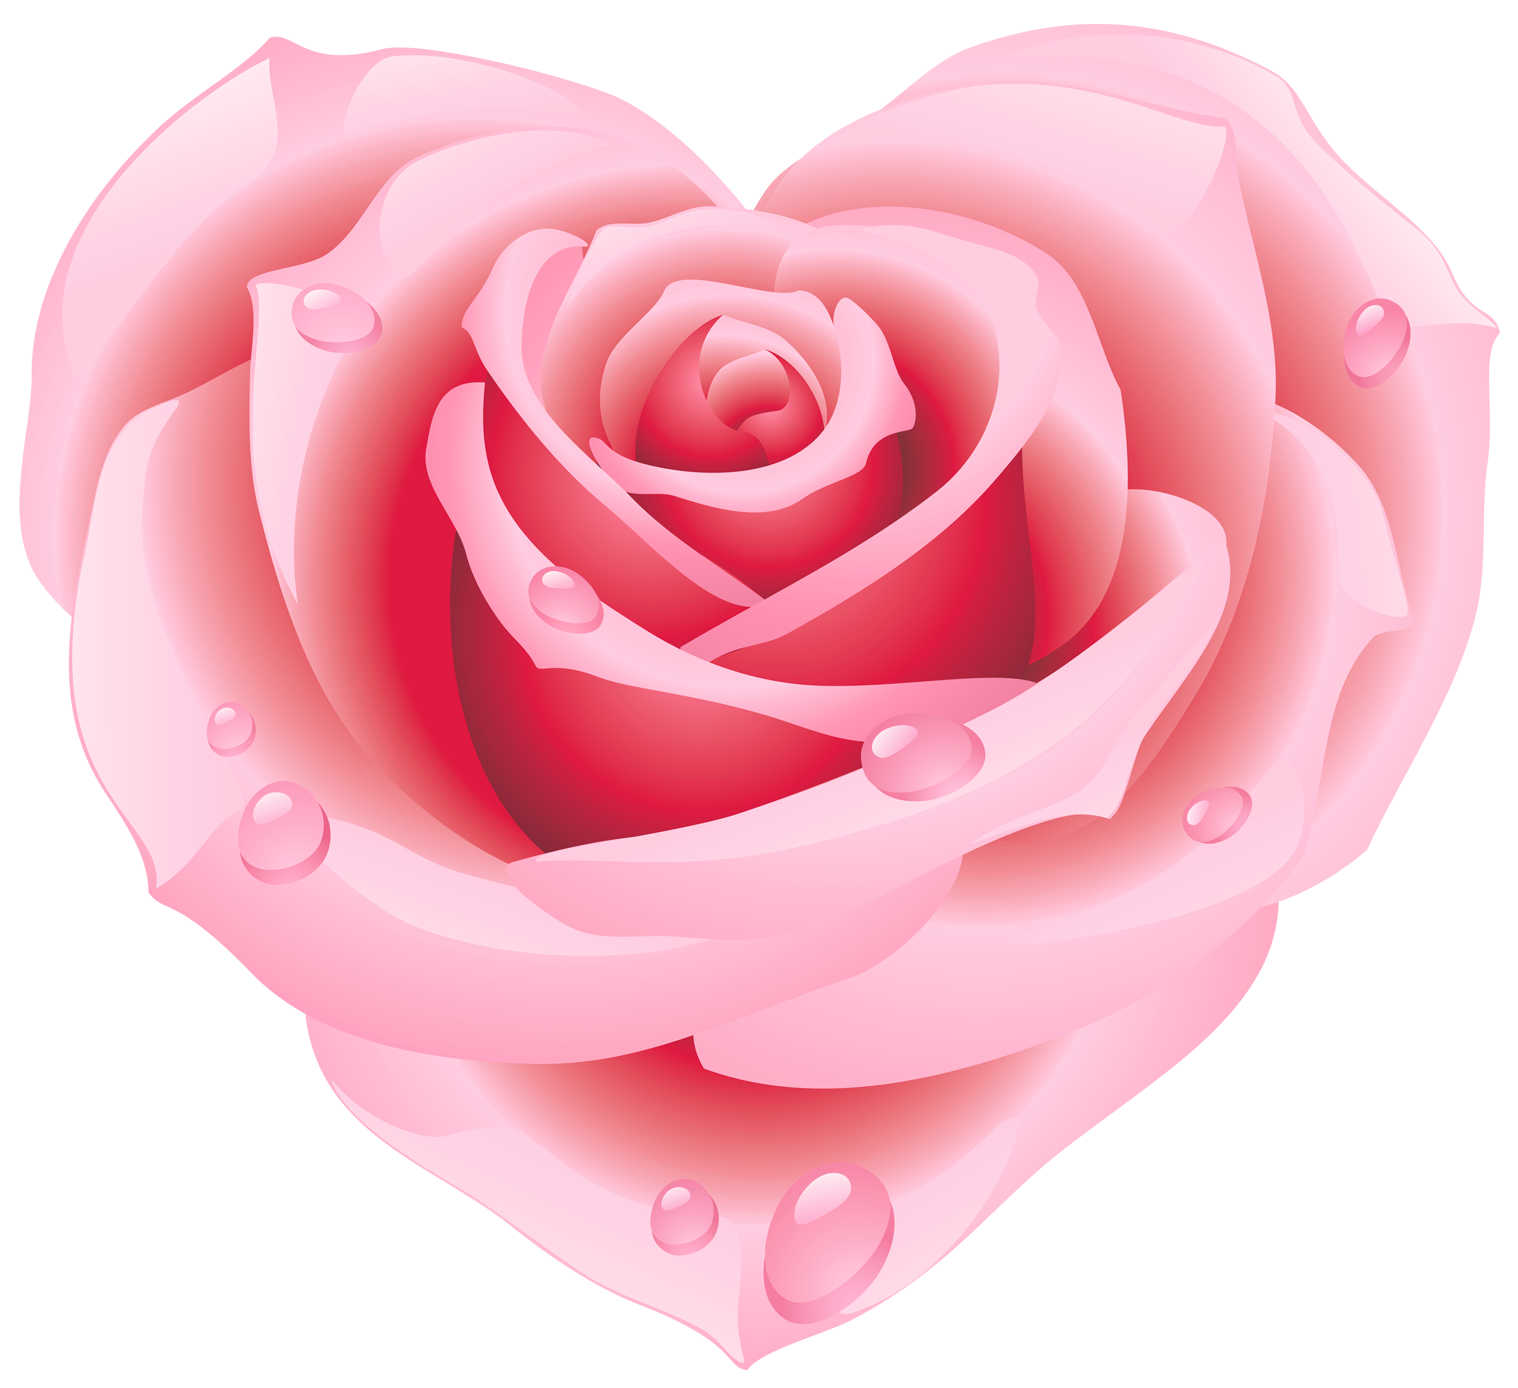 Large Pink Rose Heart Clipart.